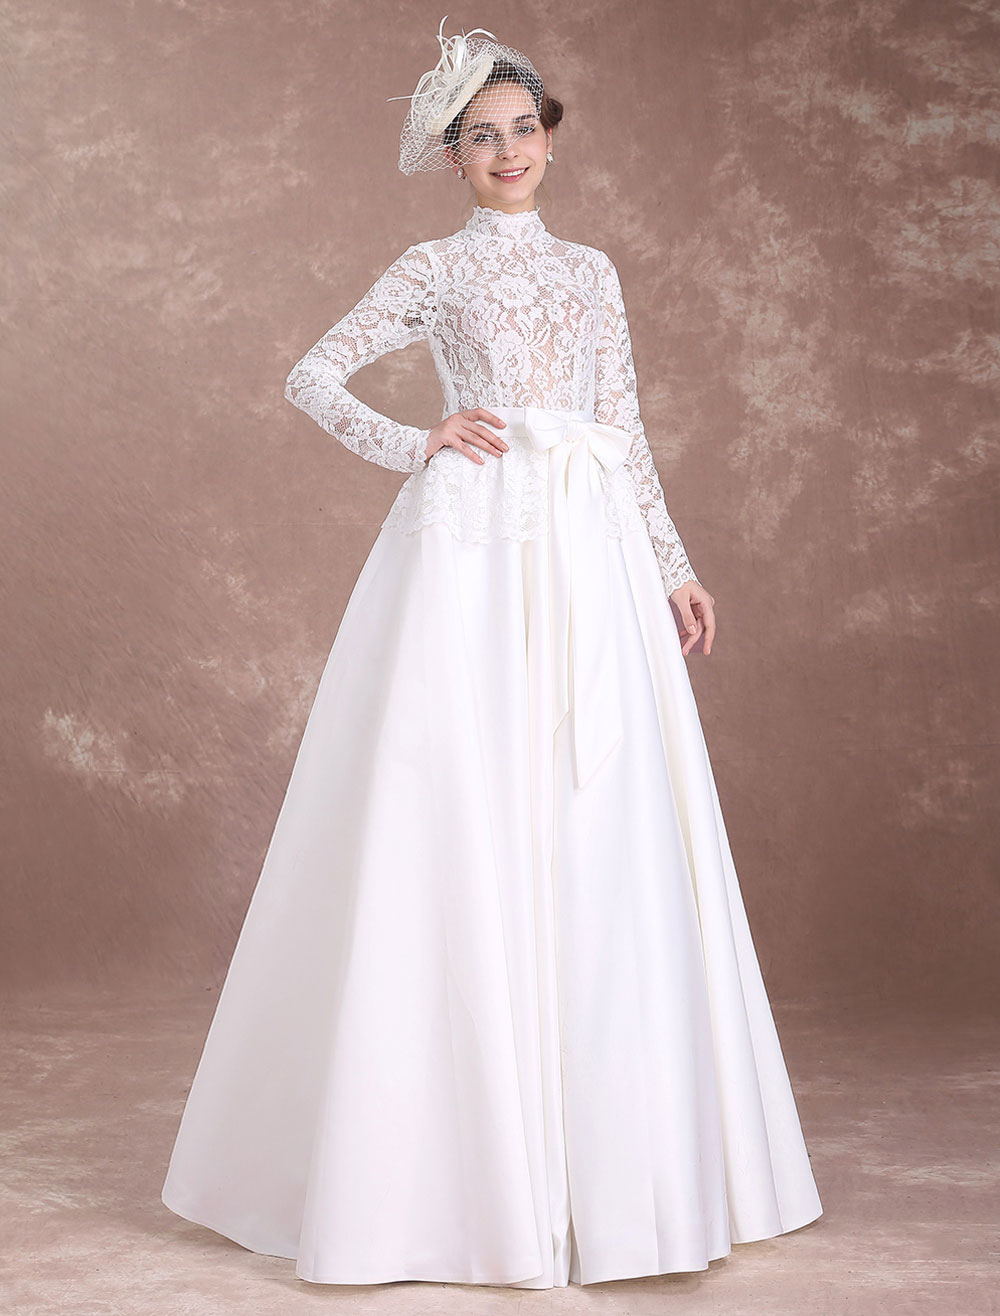 Lace Vintage Wedding Dress.Vintage Wedding Dresses Lace Ivory Bridal Dress Long Sleeve High Collar Illusion Satin Cut Out Floor Length Wedding Gown Milanoo